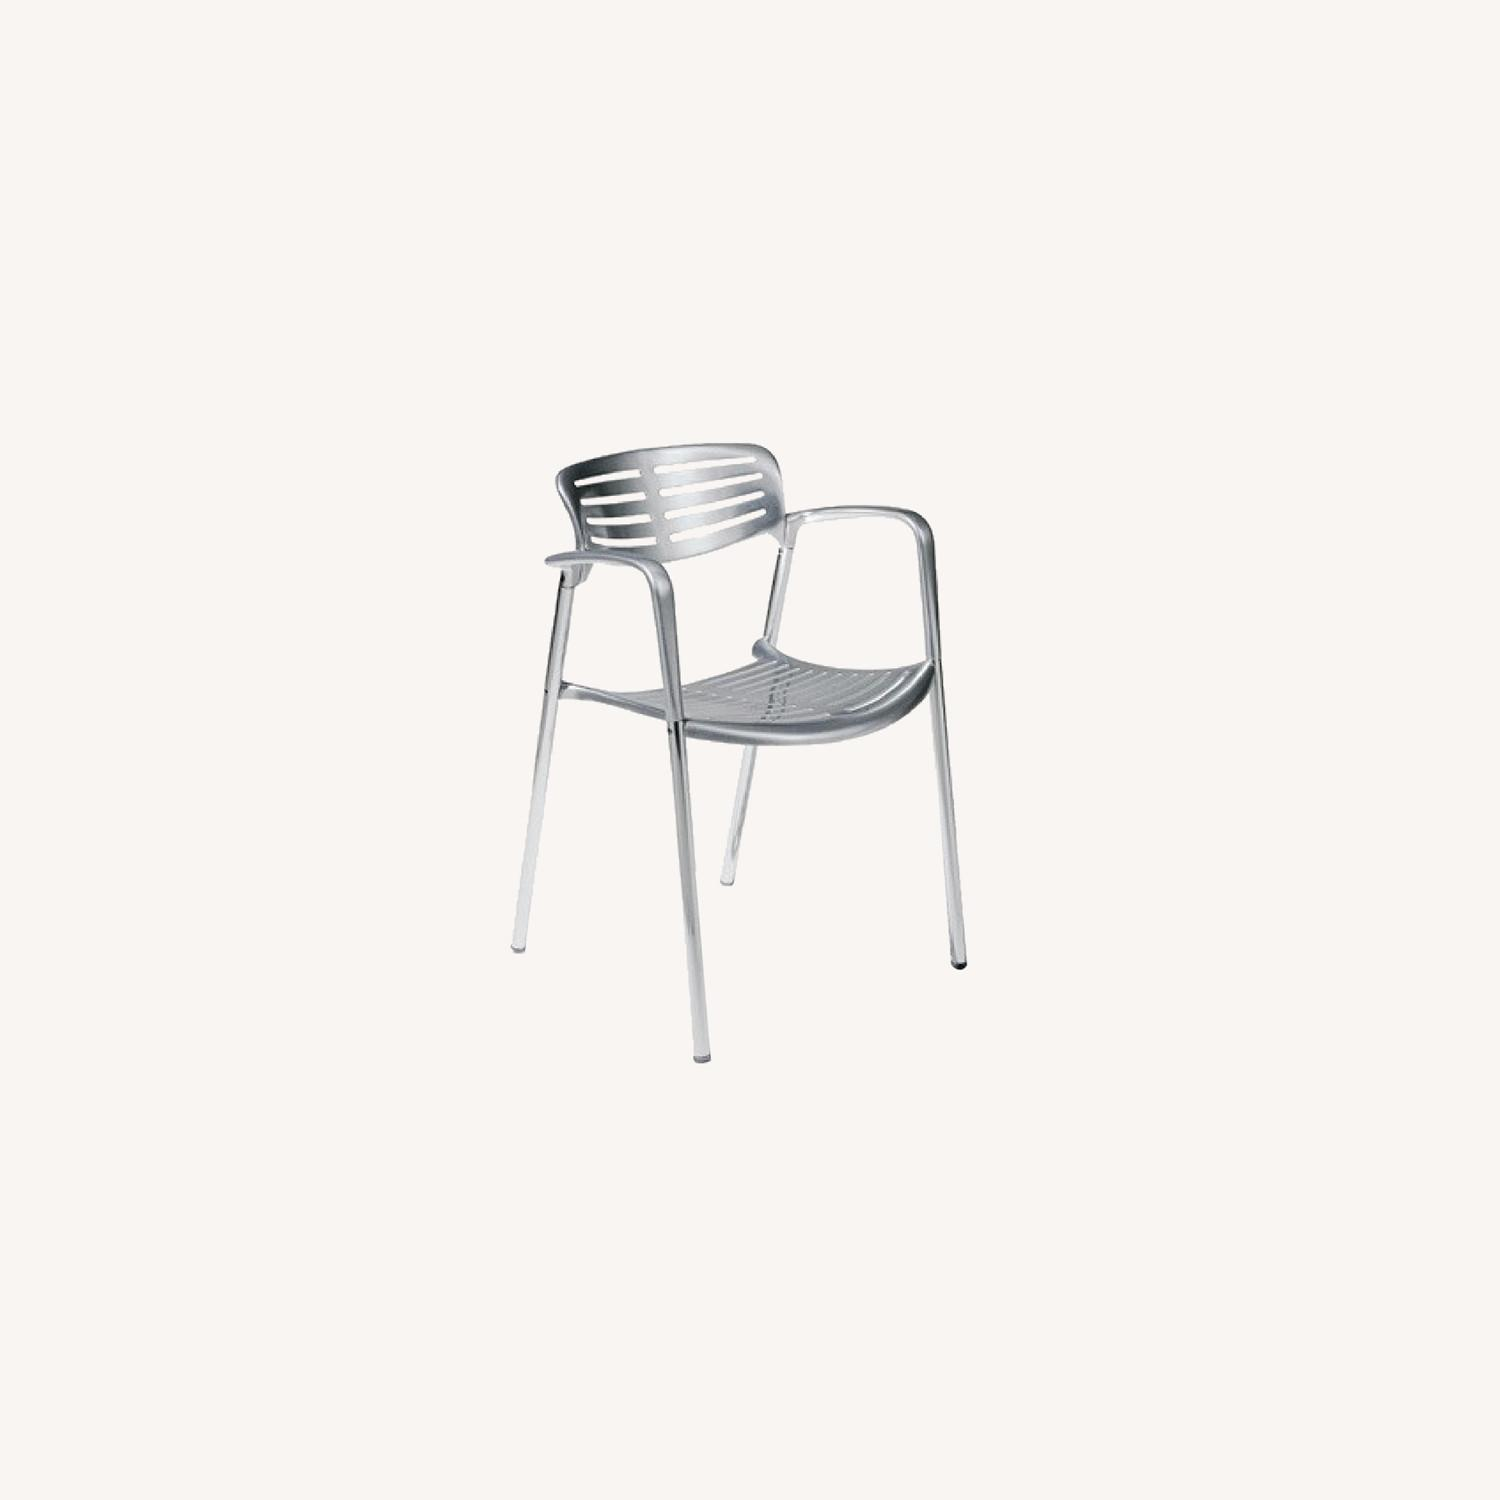 Knoll Toledo Chairs - image-0